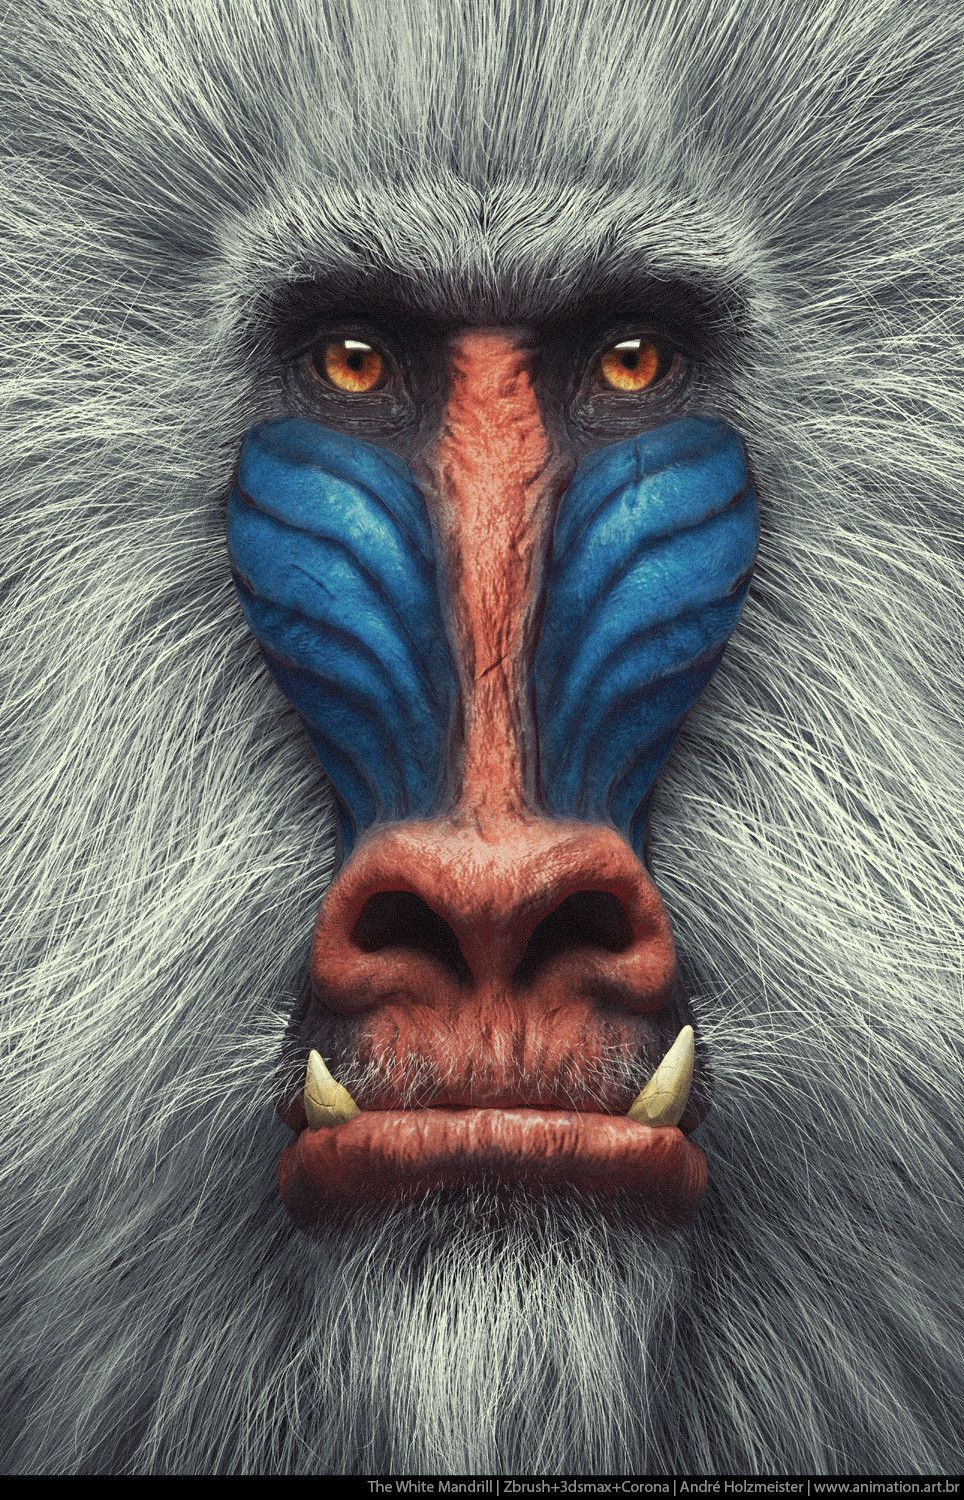 The White Mandrill   Primate Series, Andre Holzmeister is part of Wildlife animals - I am making a Series of Primate portraits